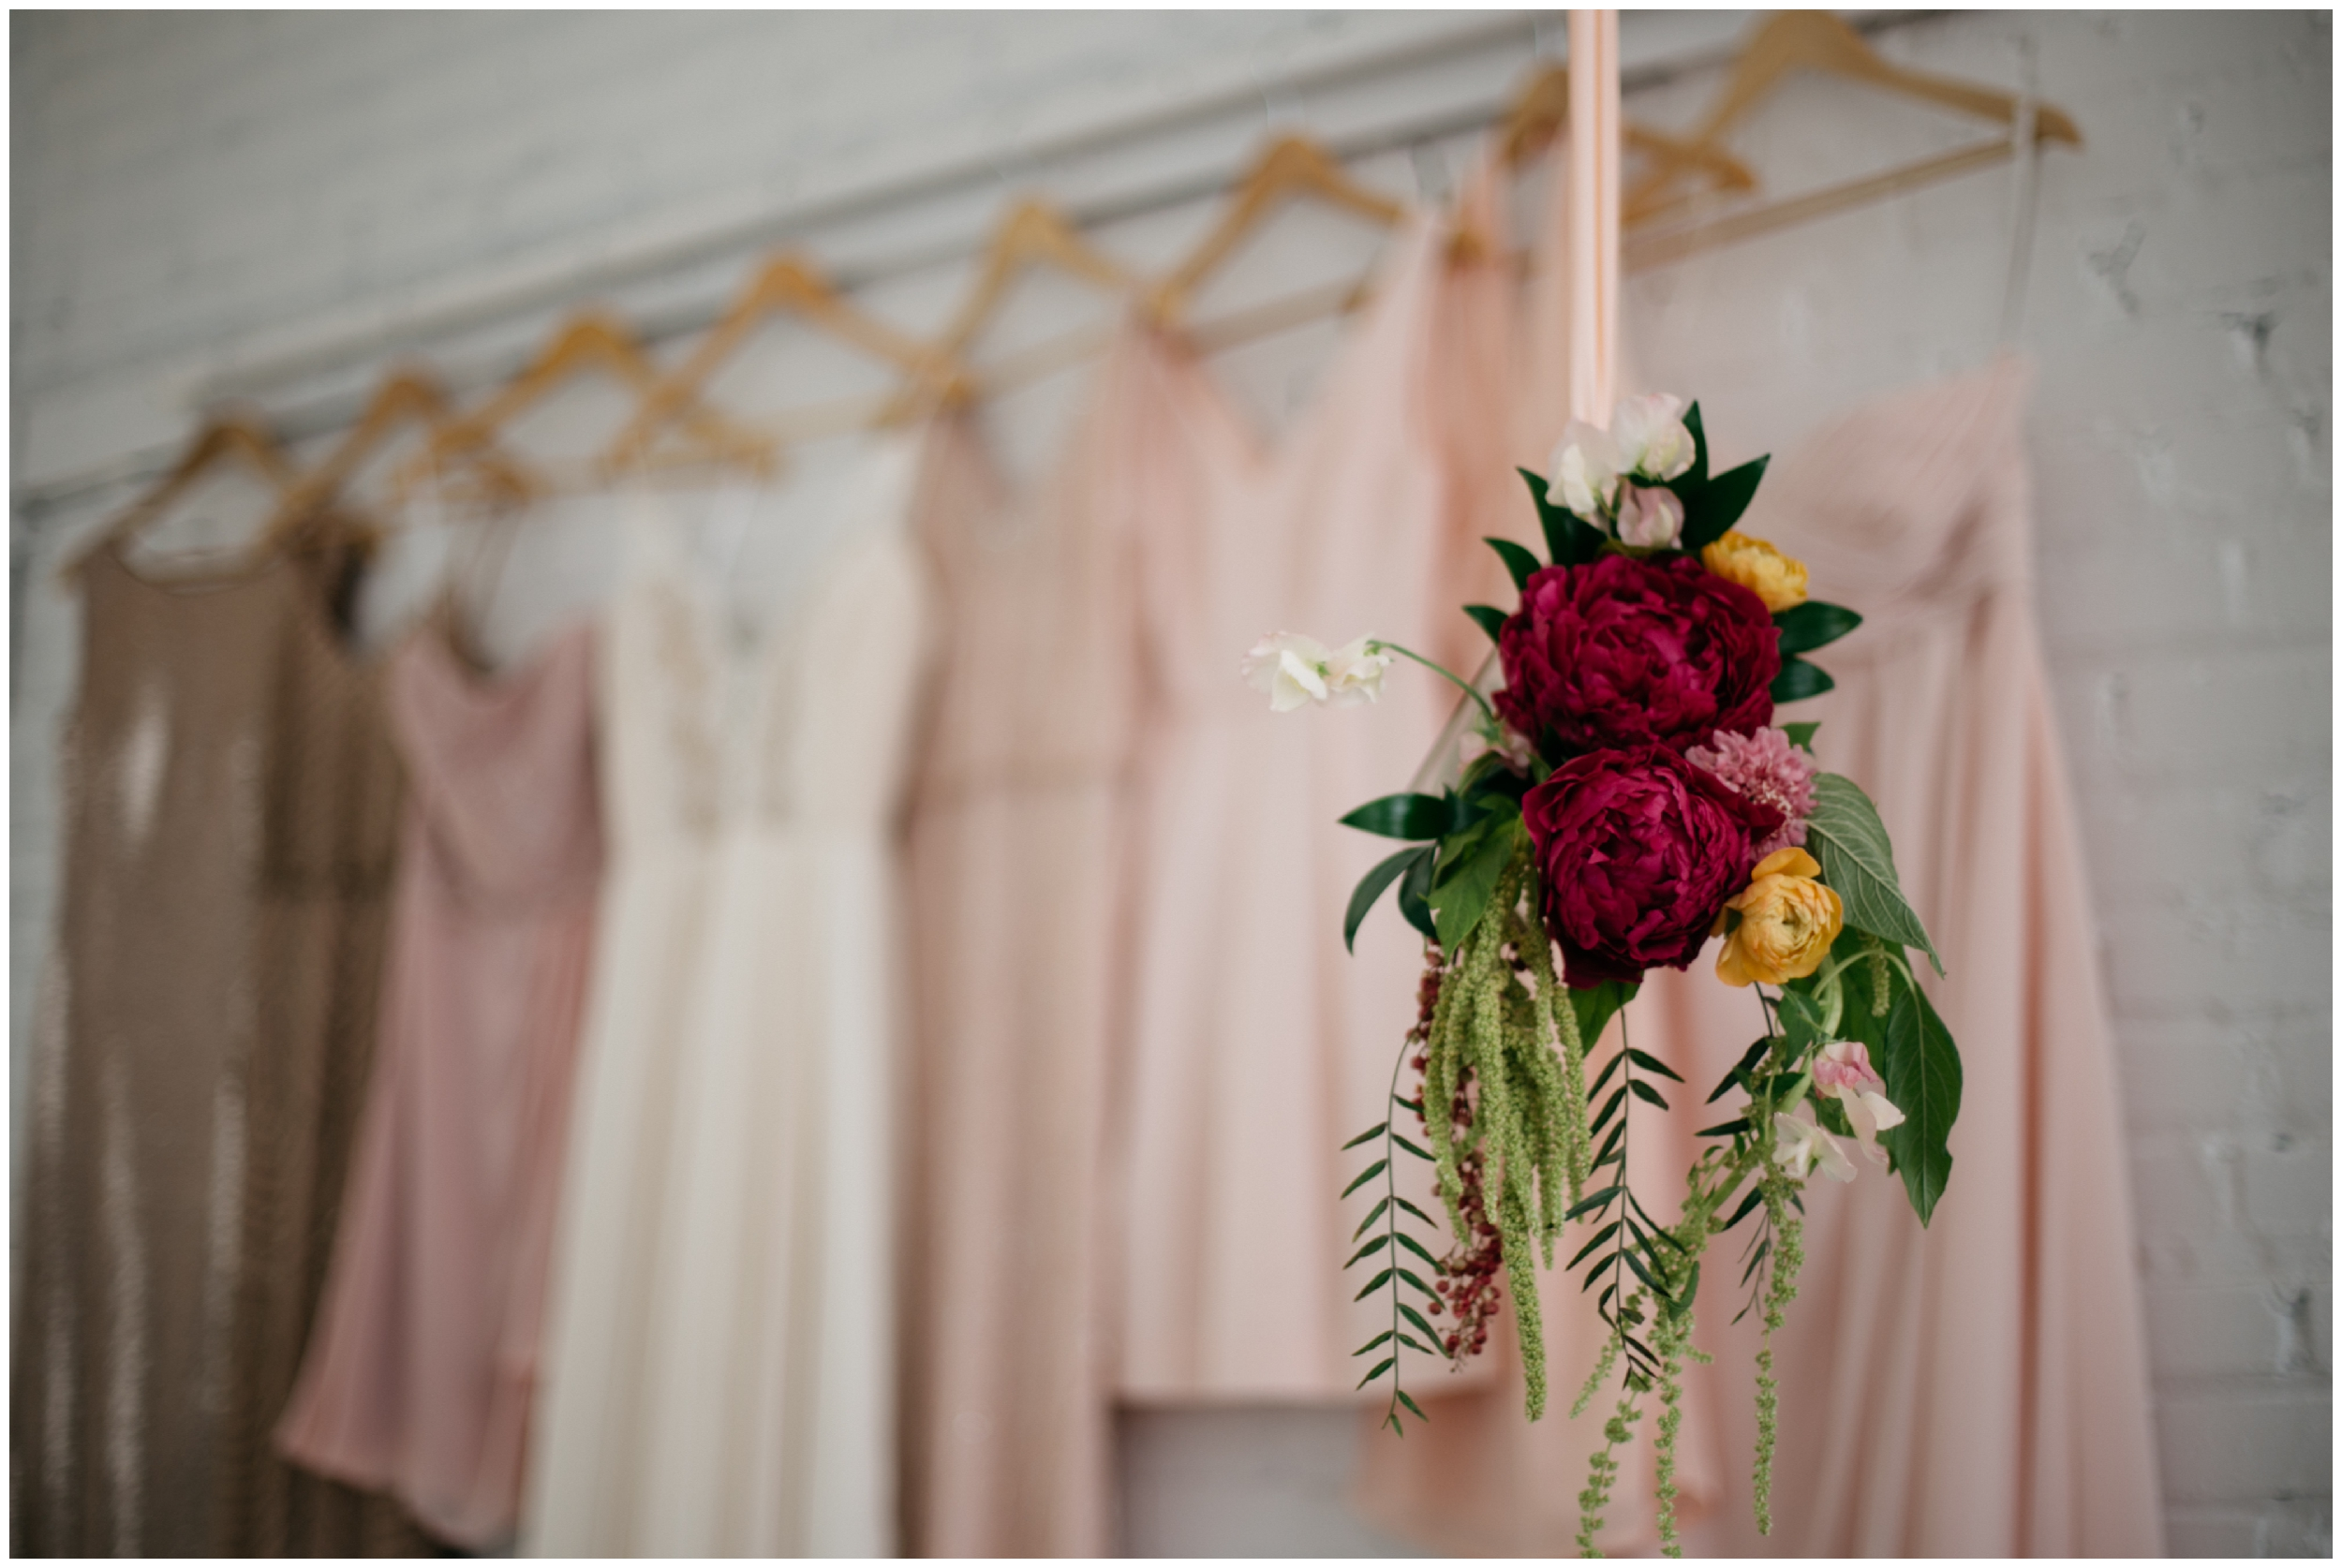 Mismatched blush colored bridesmaids dresses hanging in the bridal suite at the NP Event Space